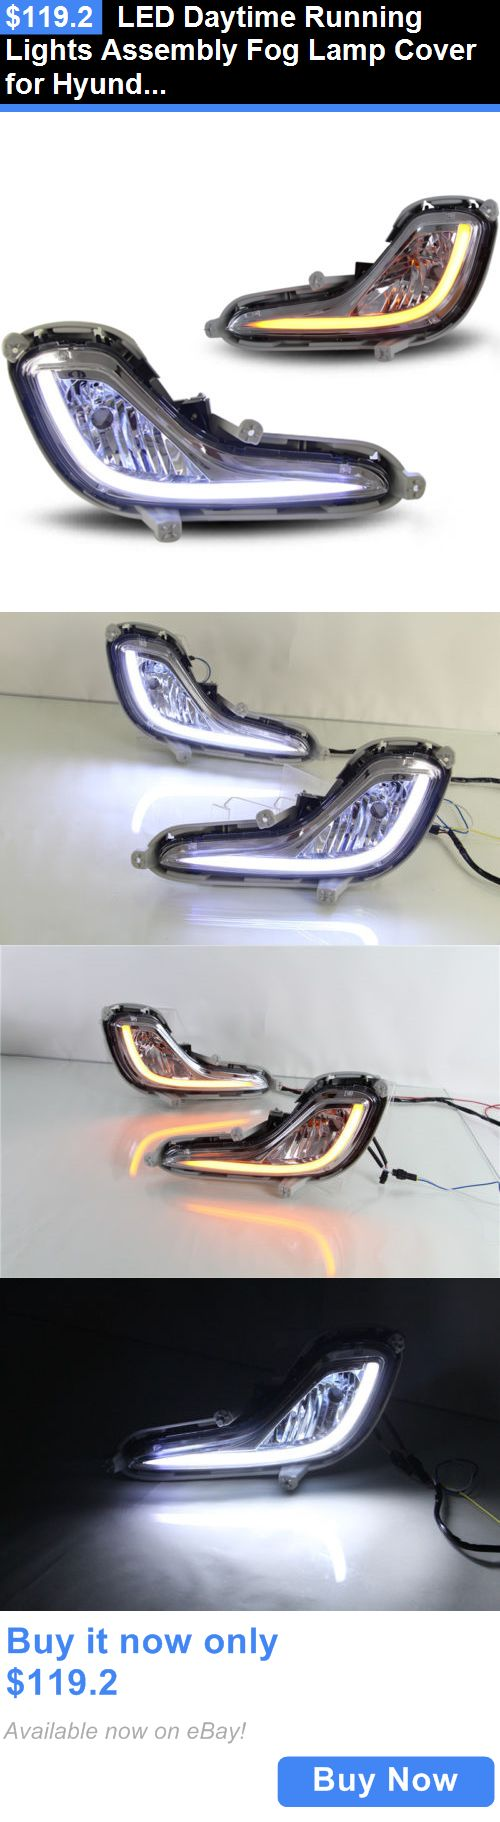 Motors Parts And Accessories: Led Daytime Running Lights Assembly Fog Lamp Cover For Hyundai Accent BUY IT NOW ONLY: $119.2